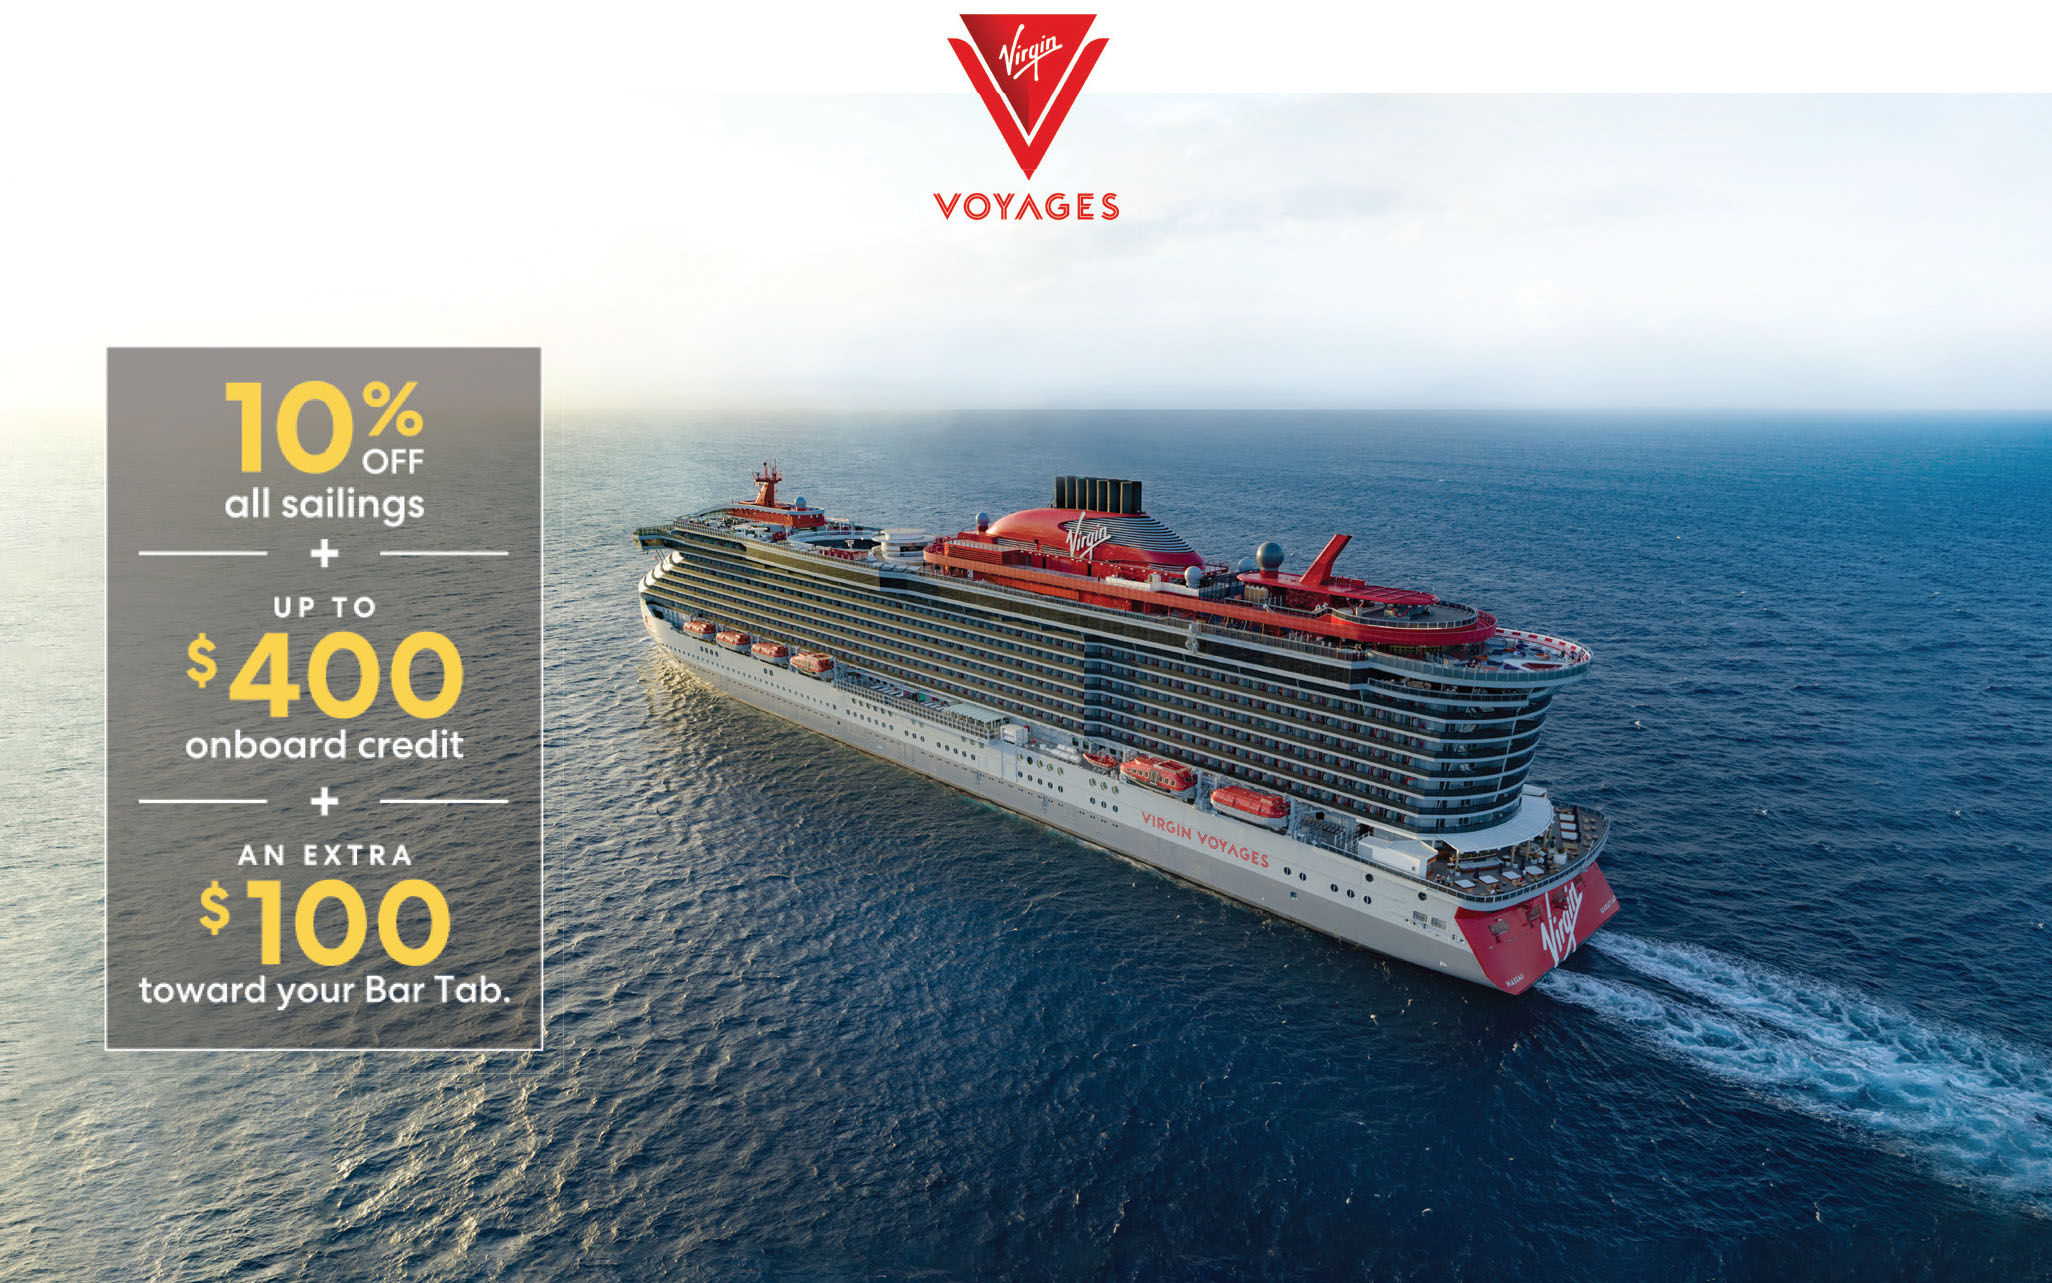 Virgin Voyages - 10% off your sailing. Up to $400 in onboard credit. And an extra $100 on your bar tab.